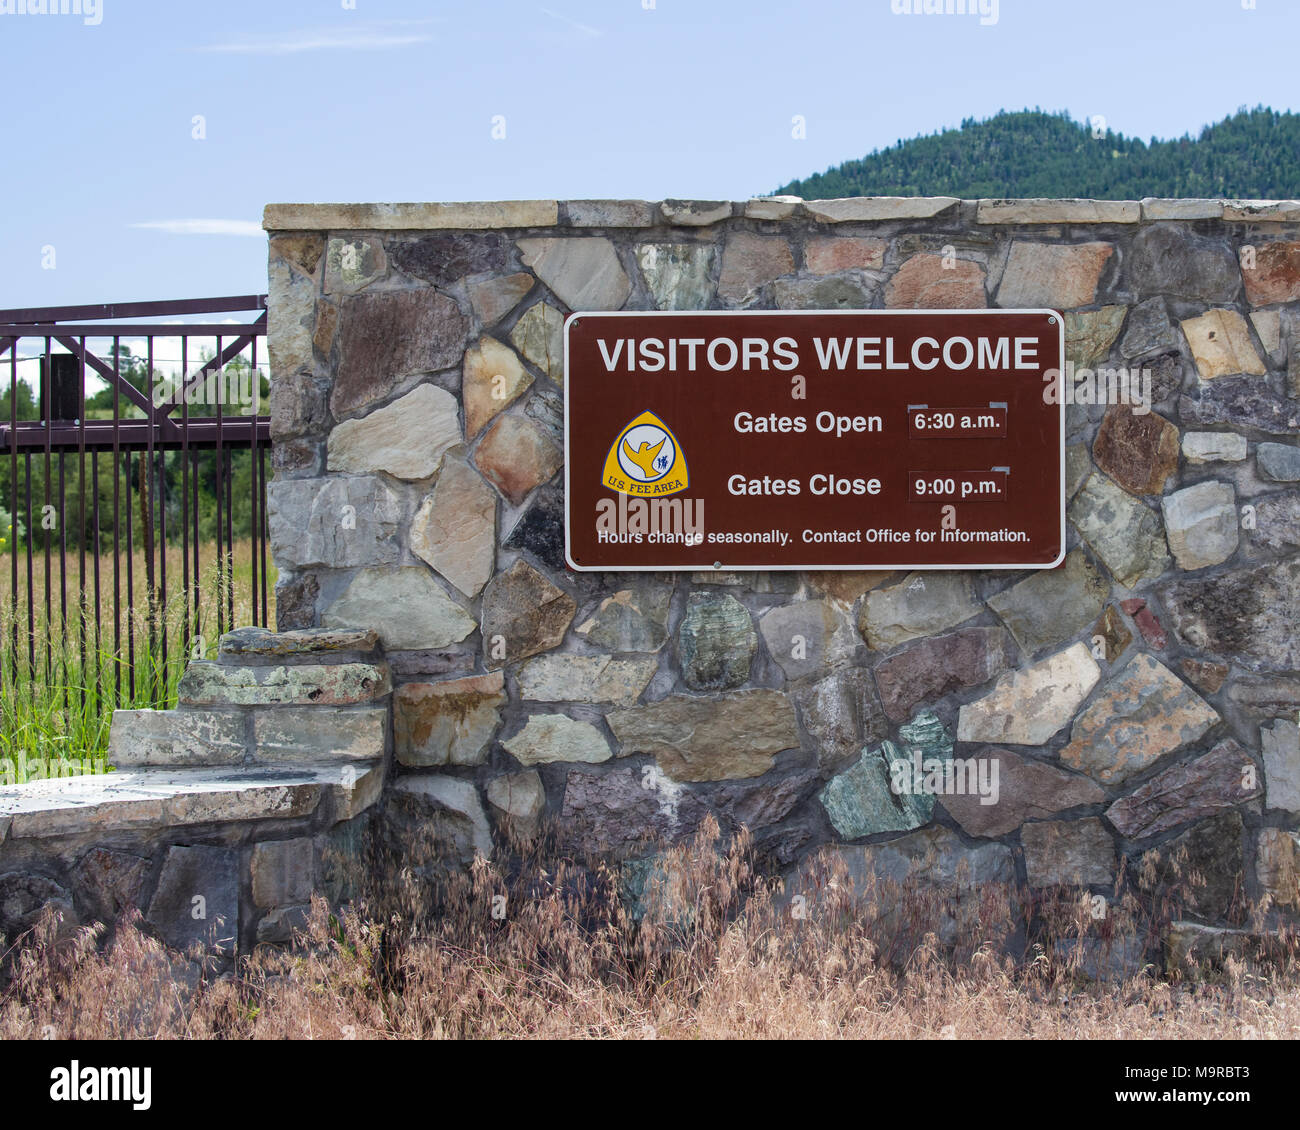 Information signs at the National Bison Range in Montana Stock Photo